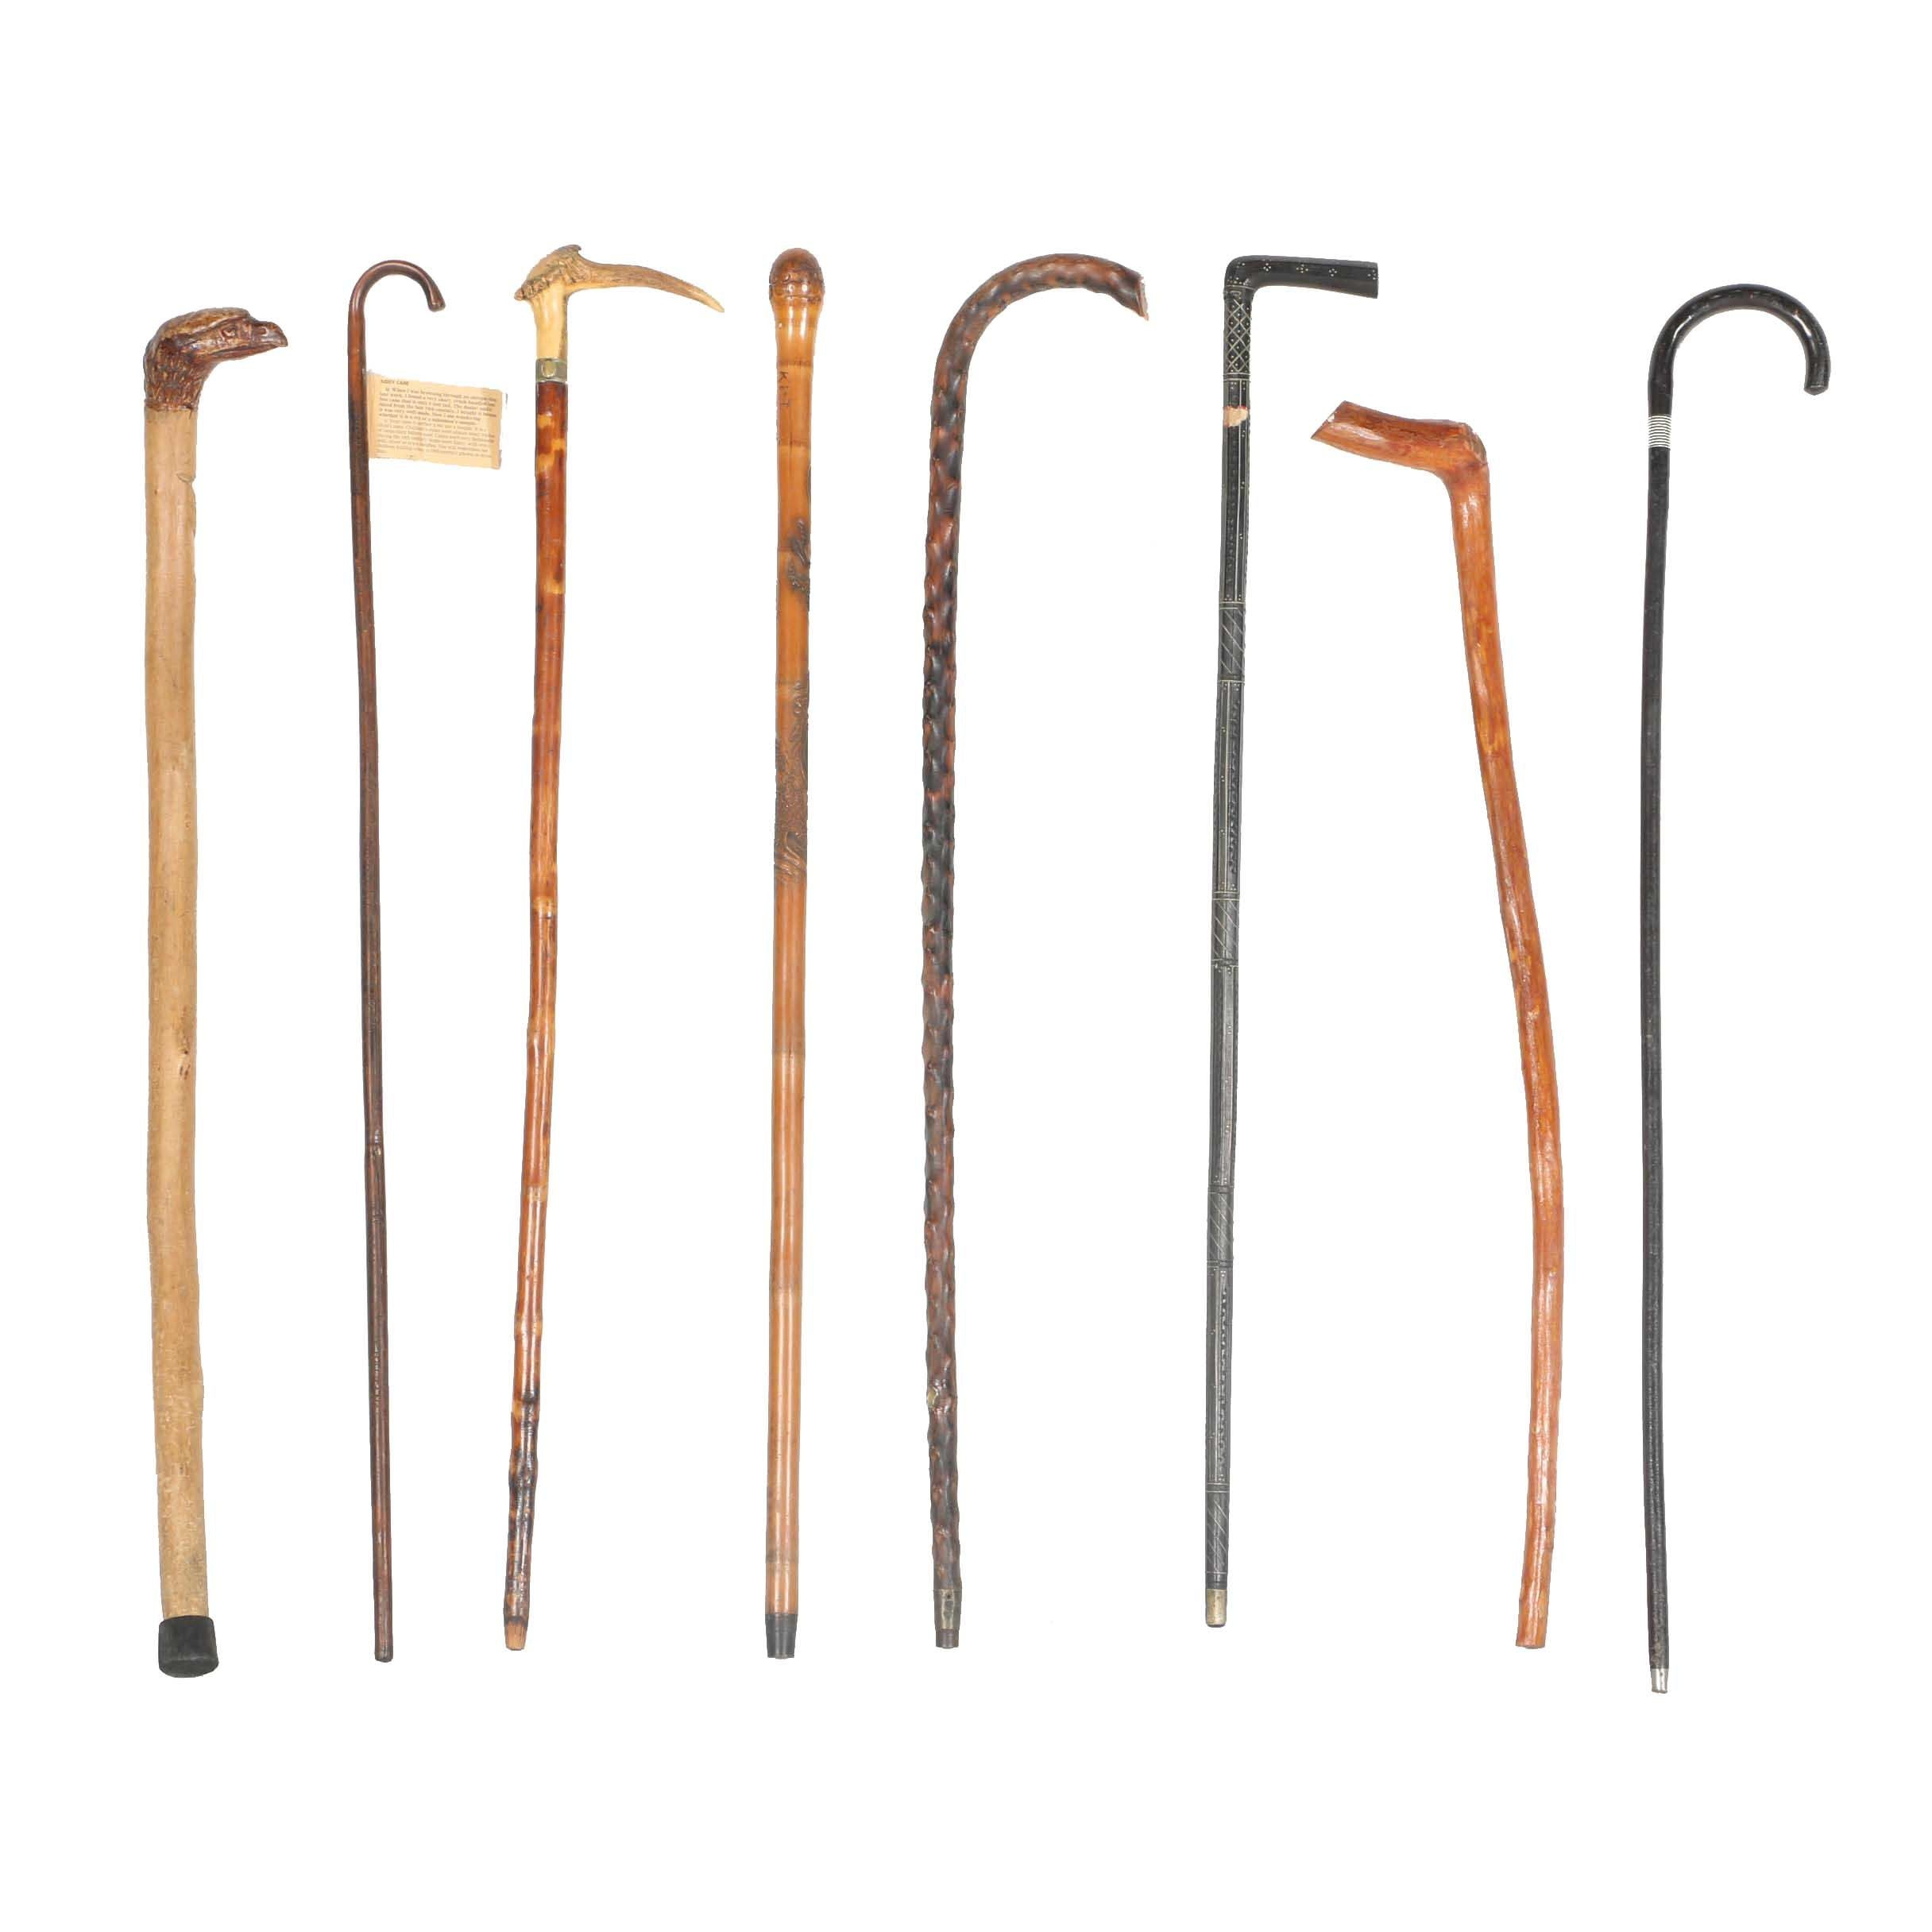 Wood Hand Carved Walking Canes and More